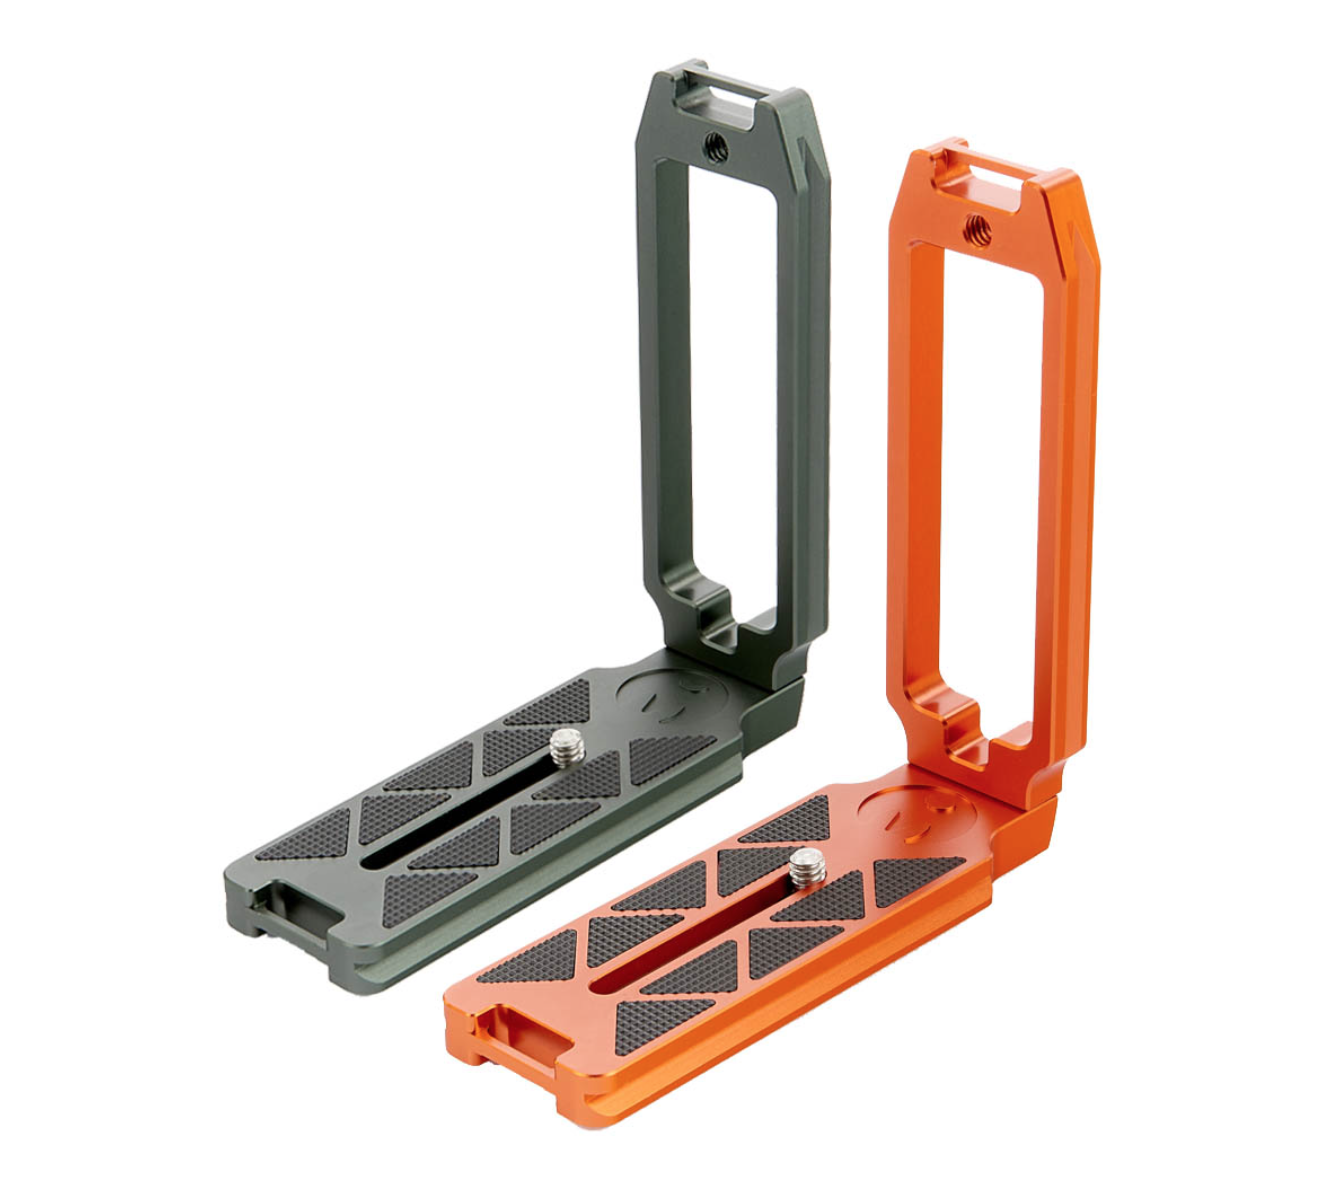 Read Supersized Universal L-Bracket Announced by 3 Legged Thing